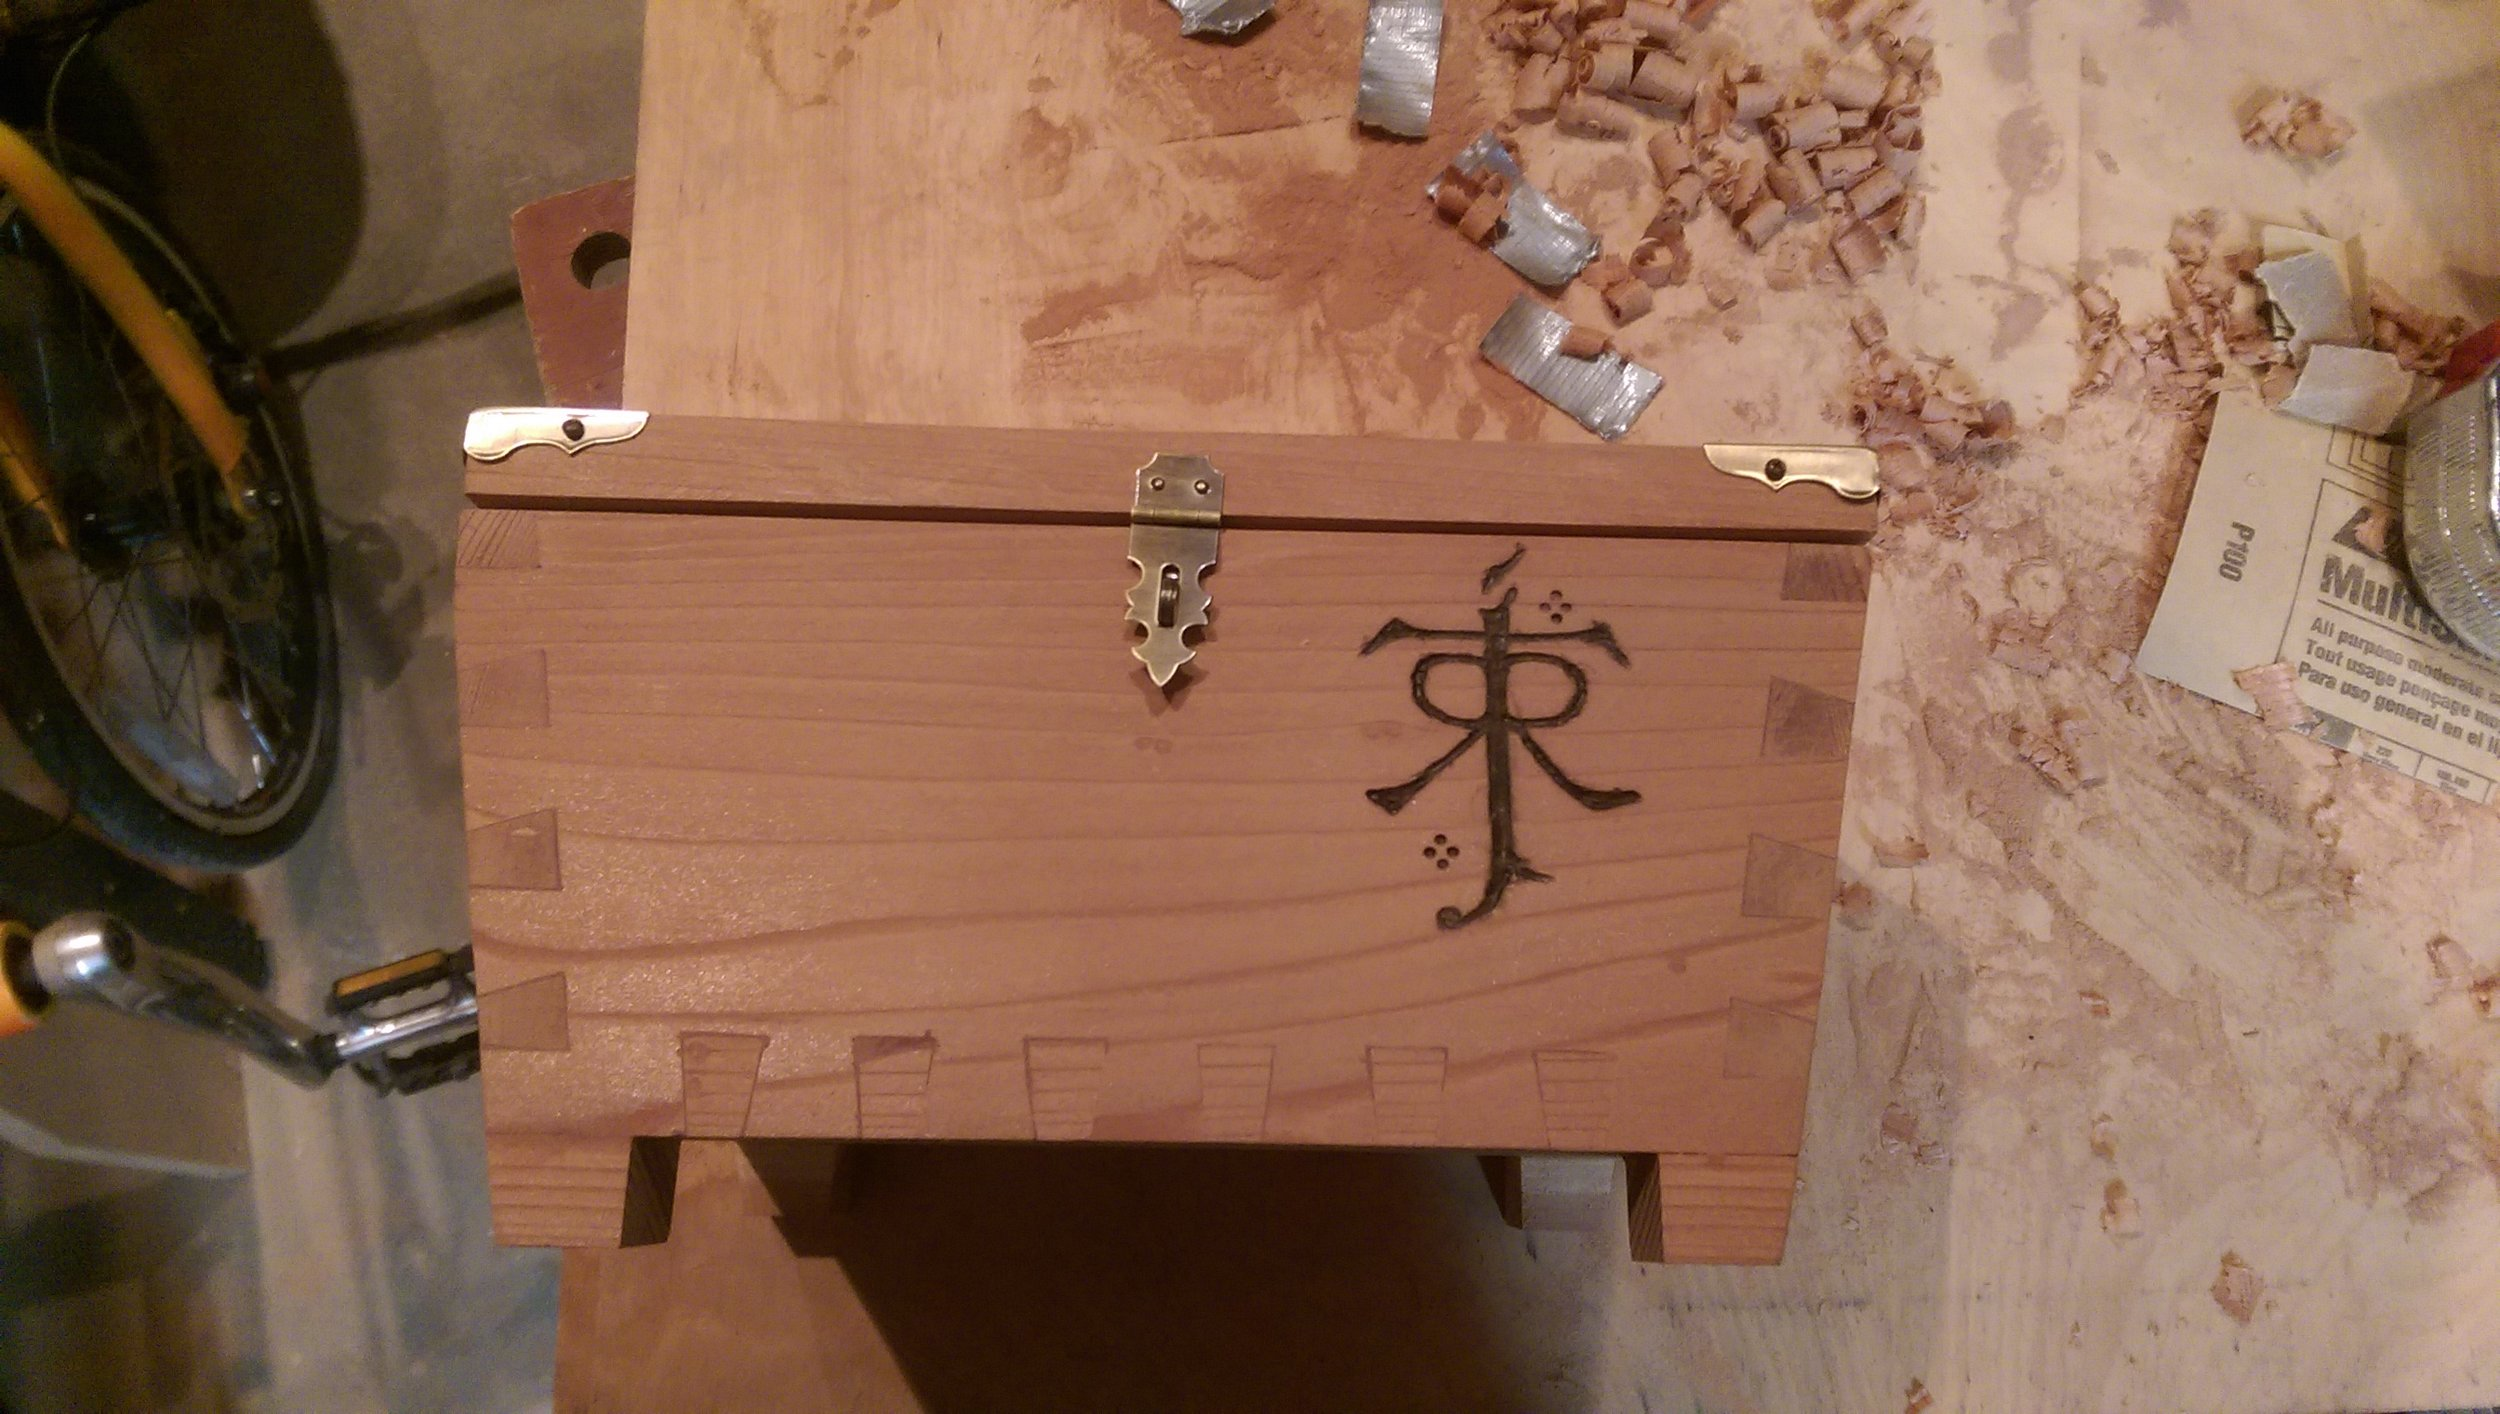 Here's the box with the emblem completed